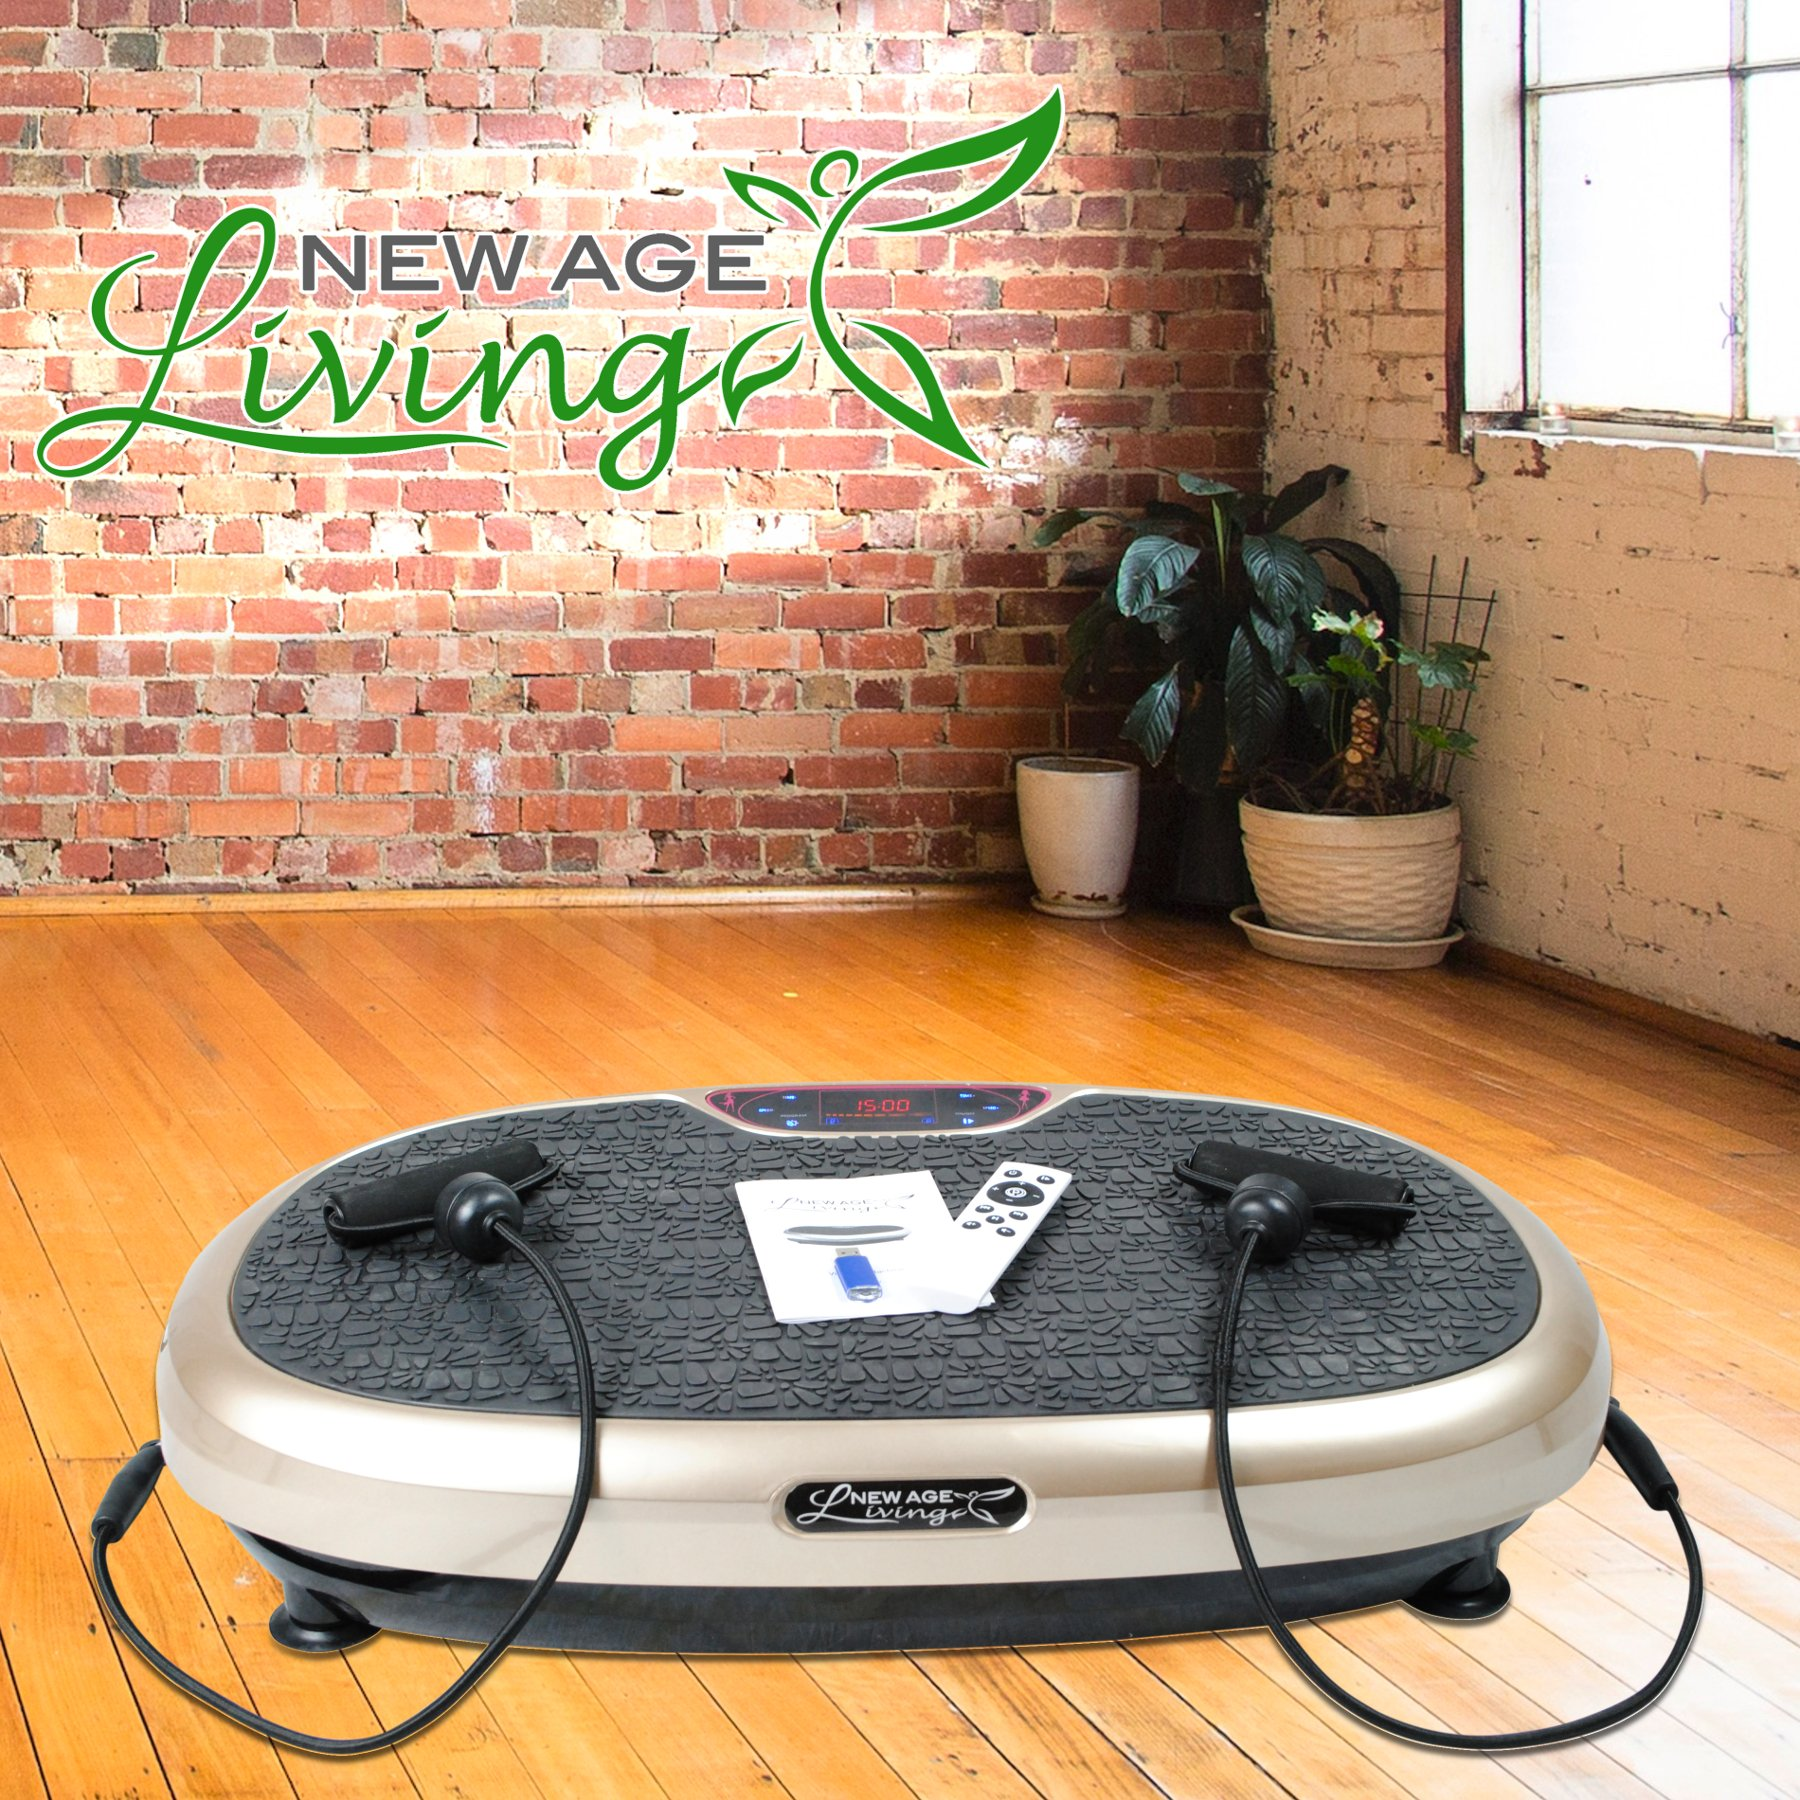 New Age Living Body Vibration Machine | Whole Body Exercise & Fitness For Men & Women | 200W Power To Plate & 120 Intensity Levels by New Age Living (Image #1)